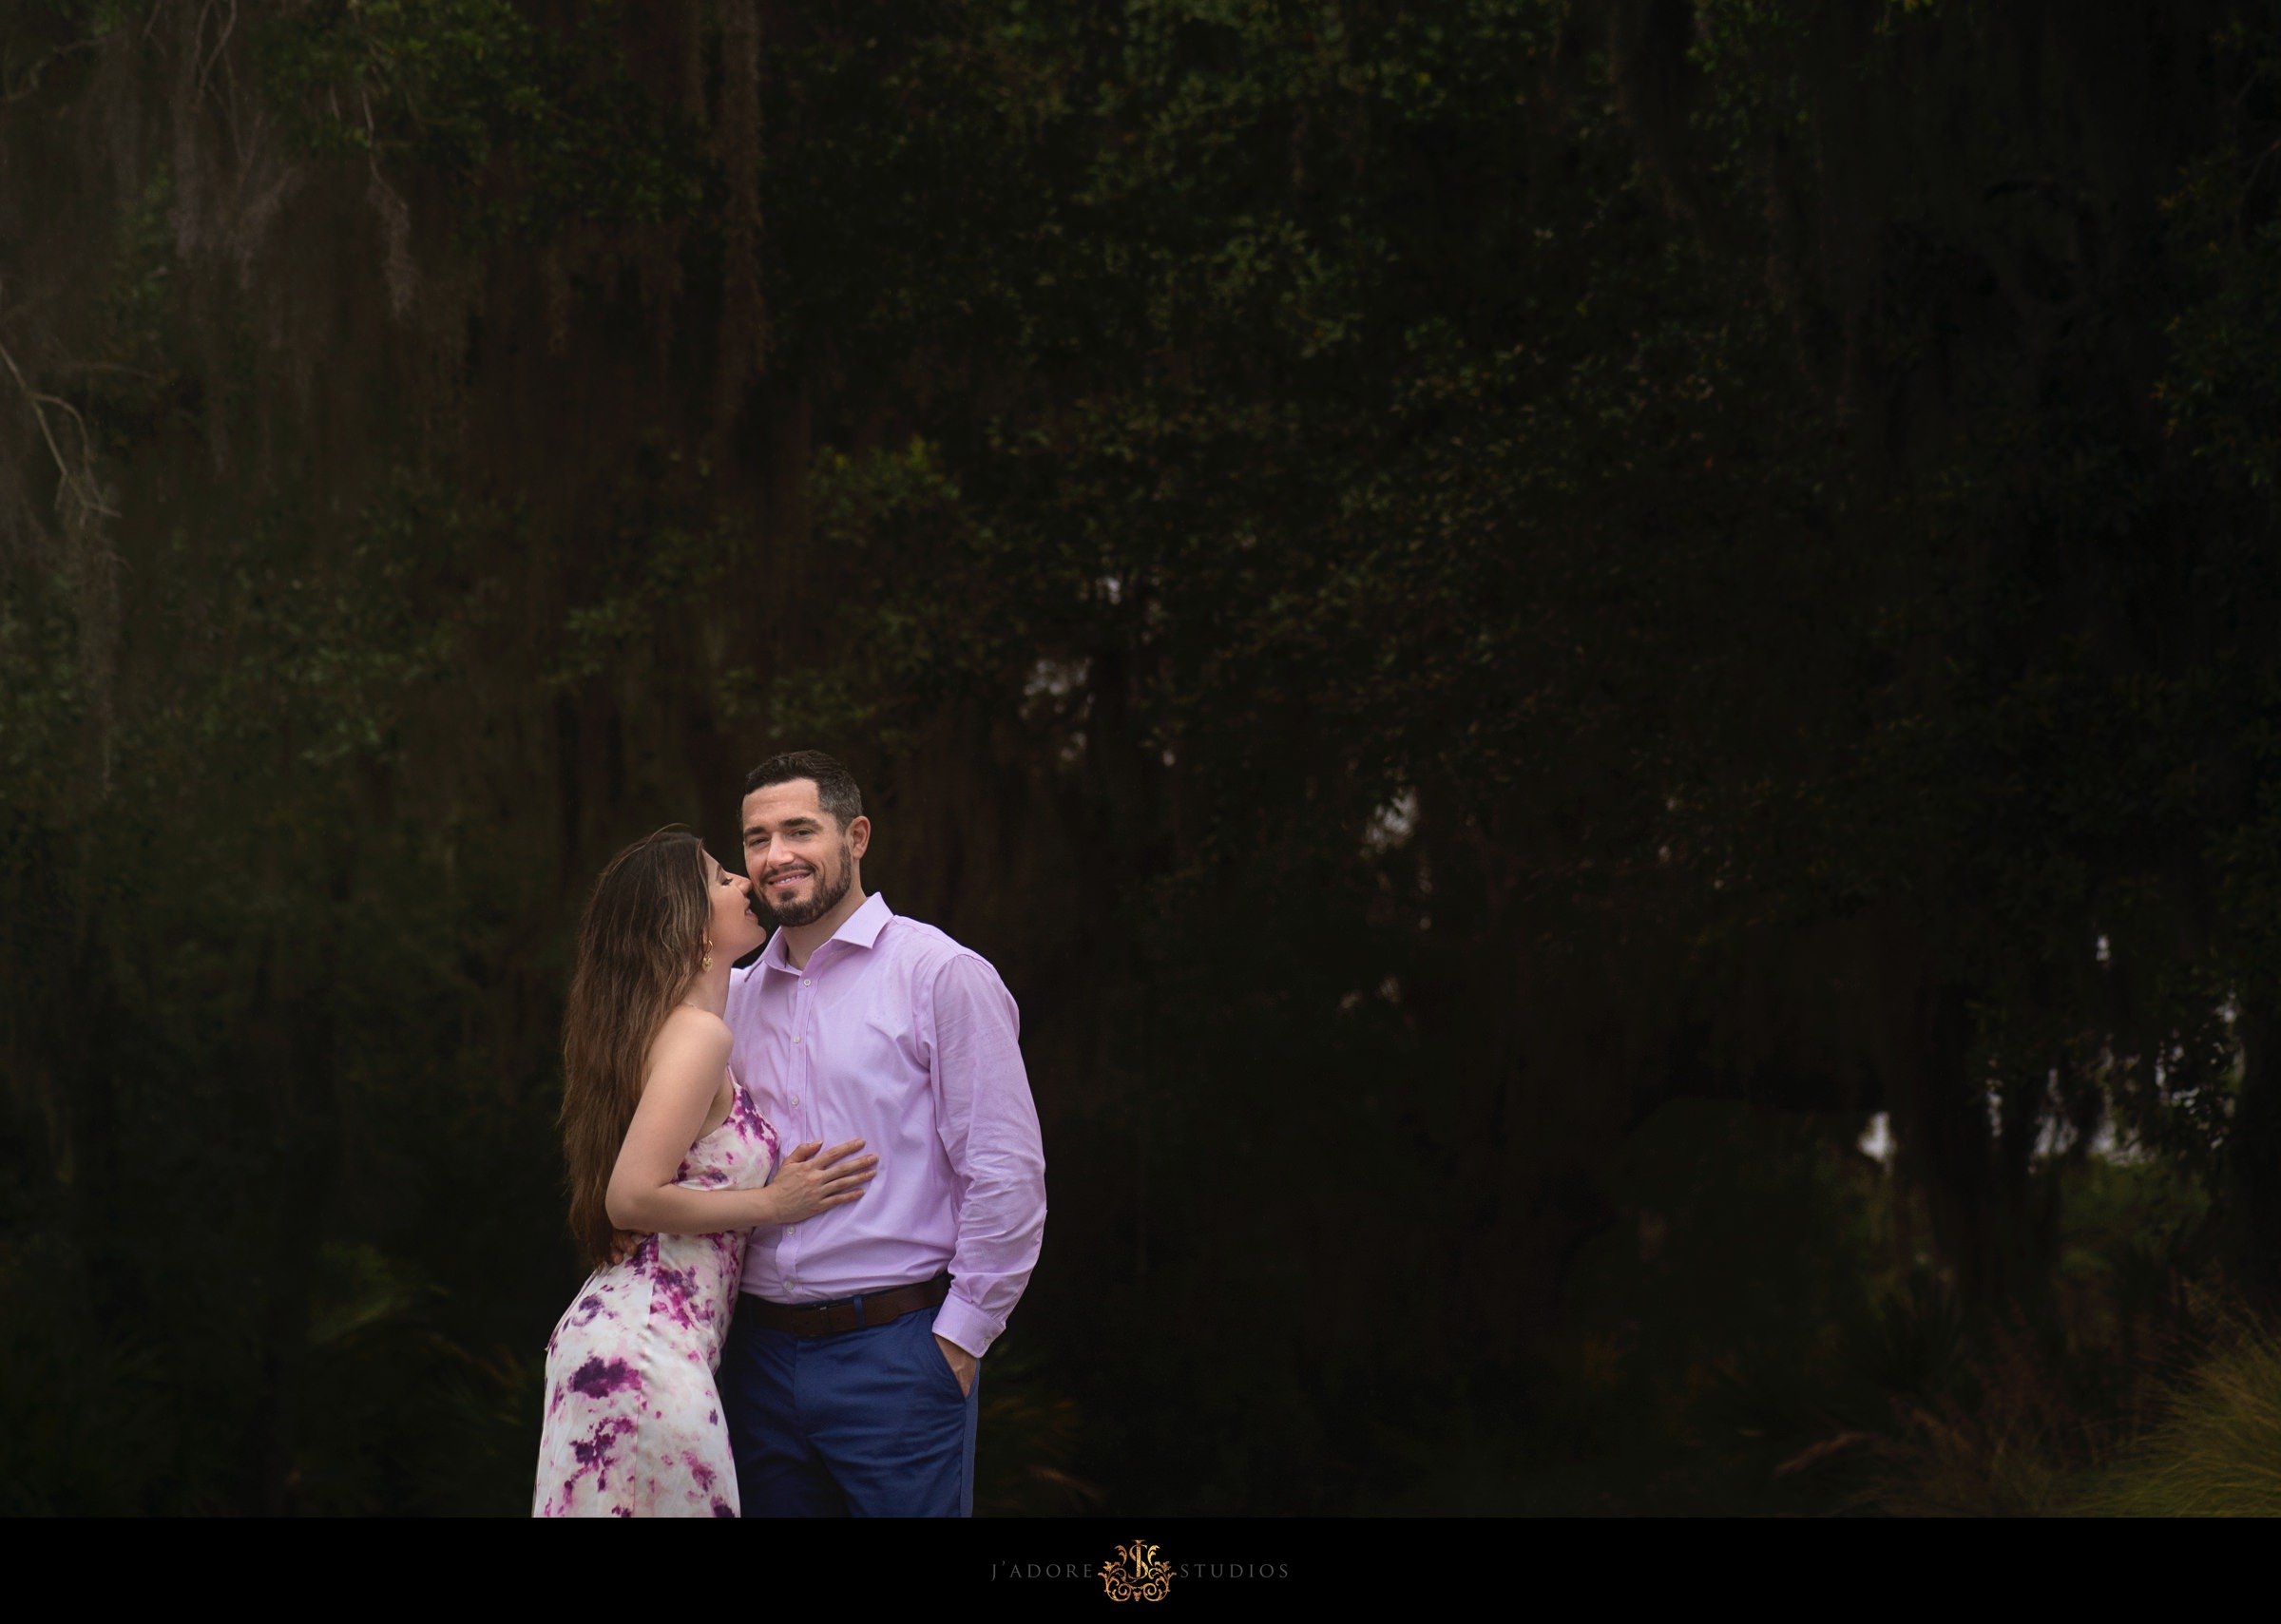 Bride kissing grooms cheek in front of mossy trees in Amelia Island Florida